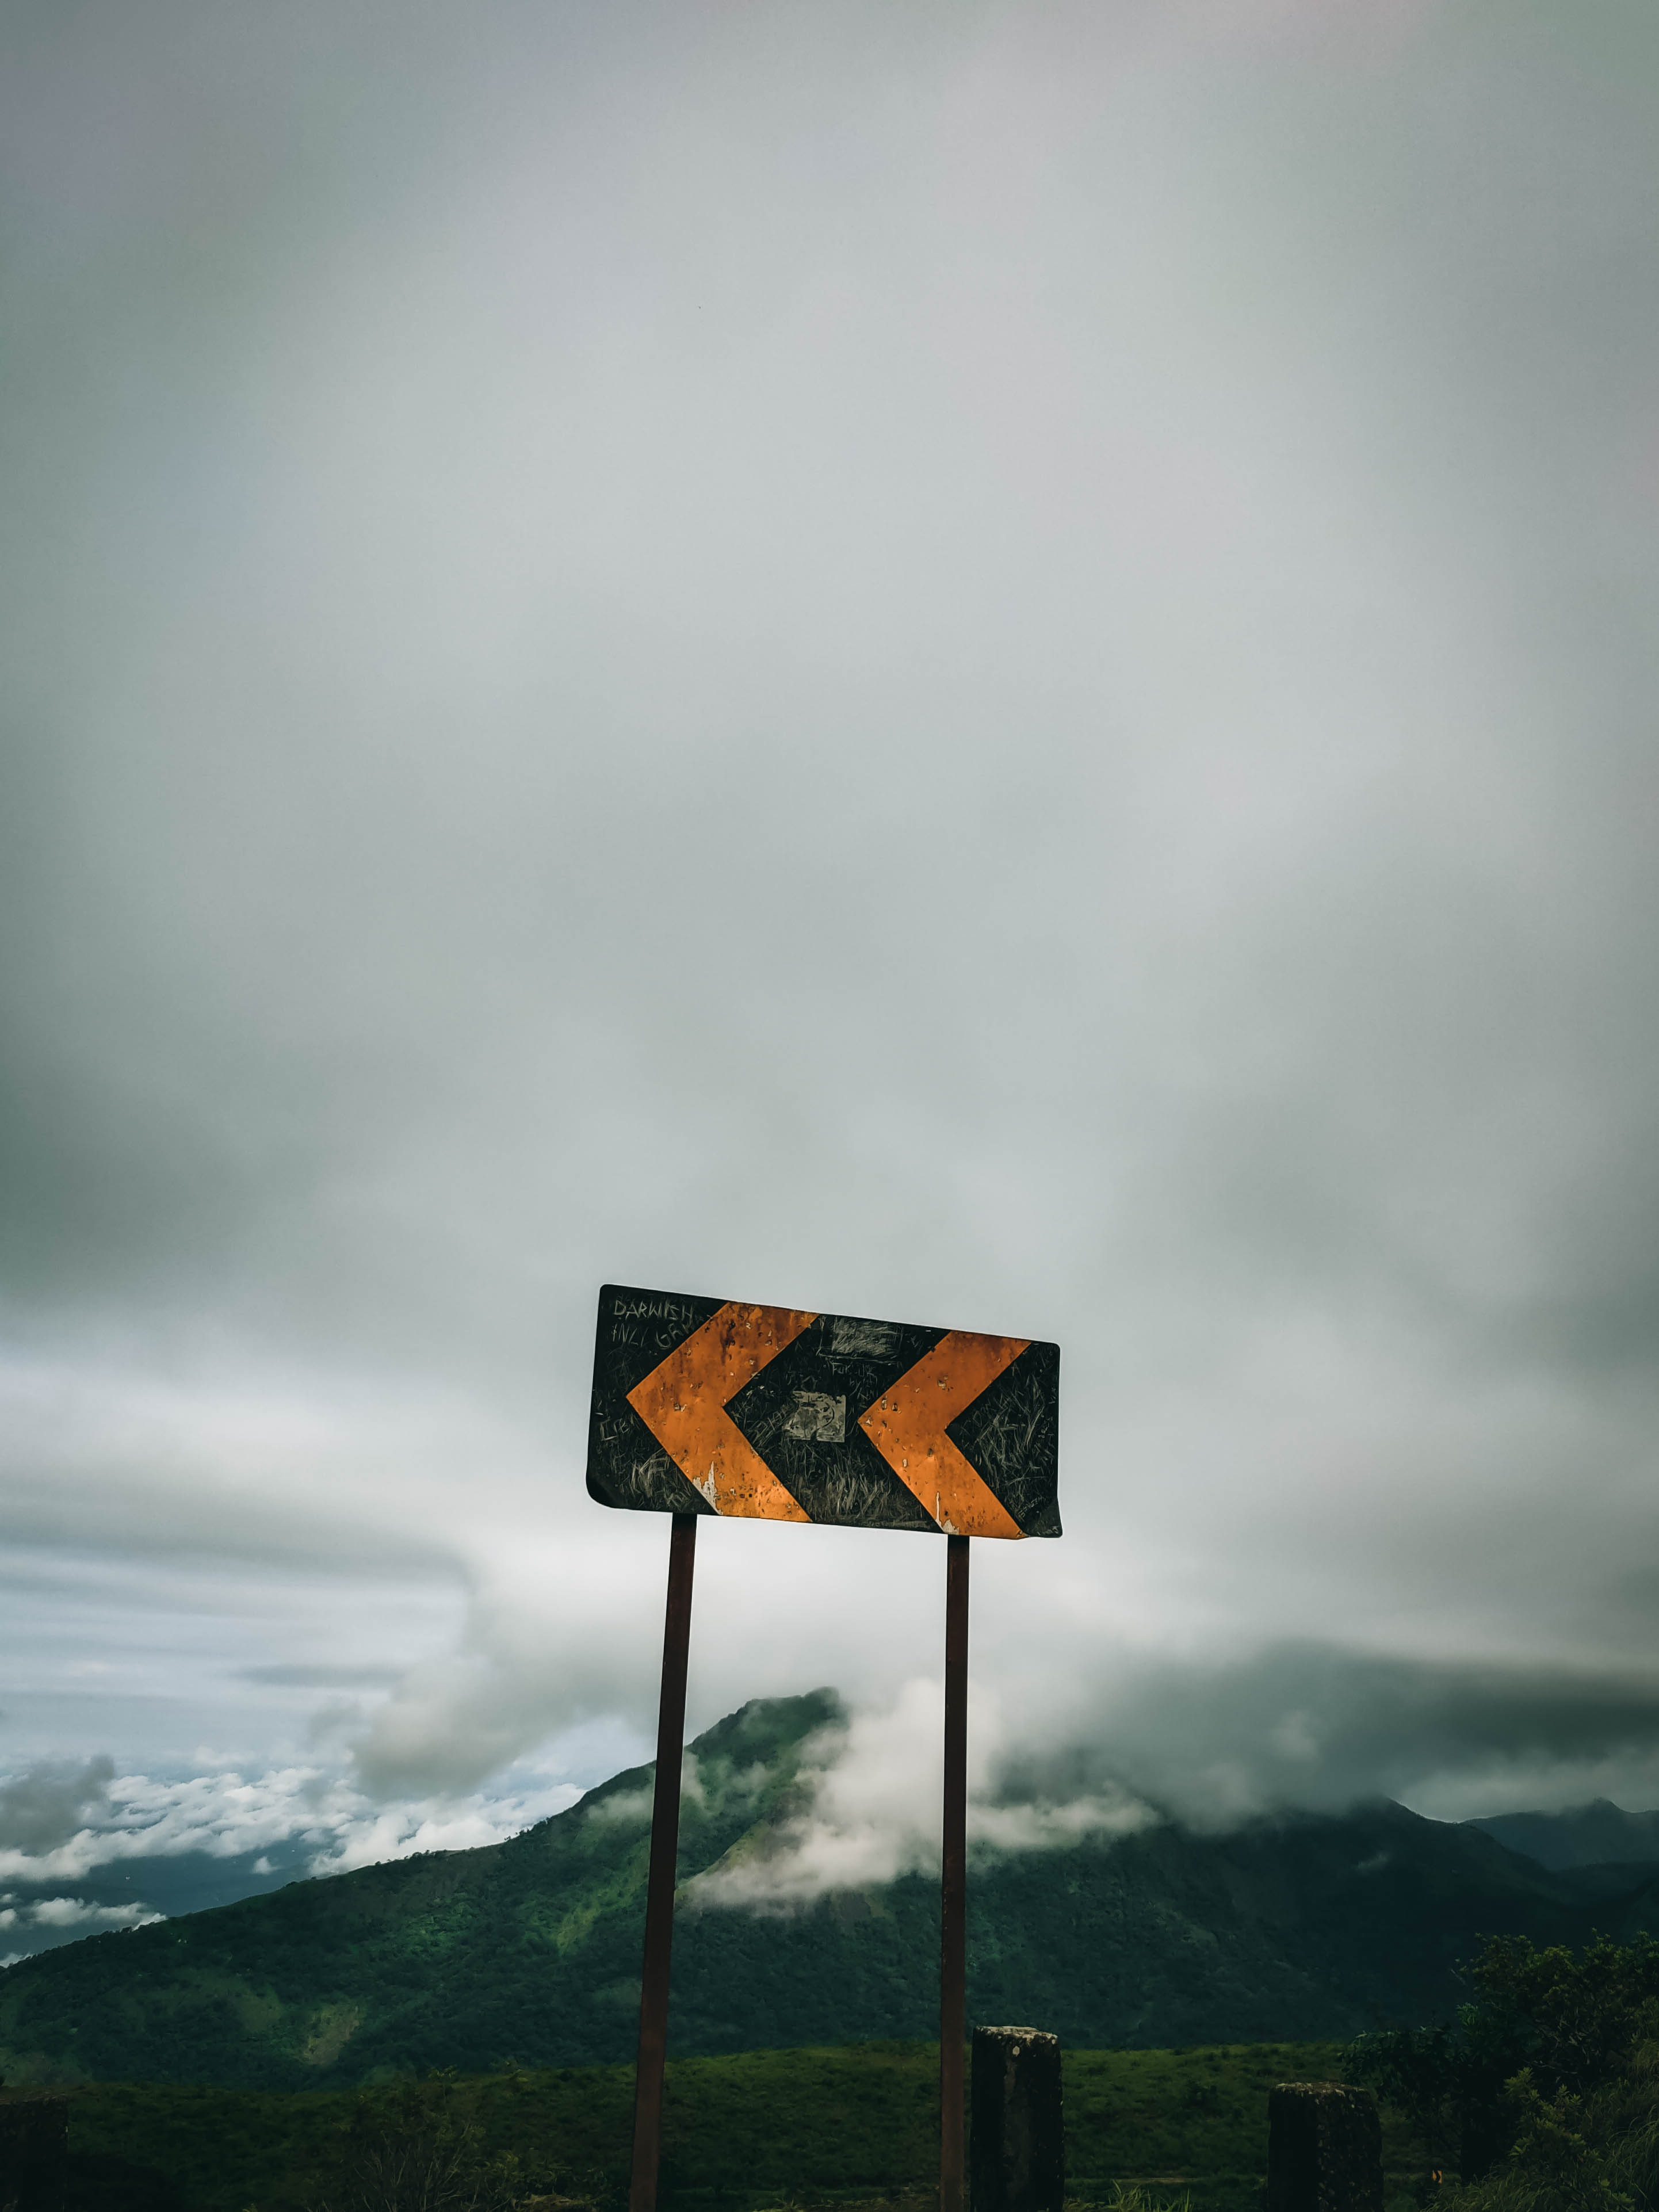 137580 download wallpaper Miscellanea, Miscellaneous, Sign, Arrow, Clouds, Mountains screensavers and pictures for free